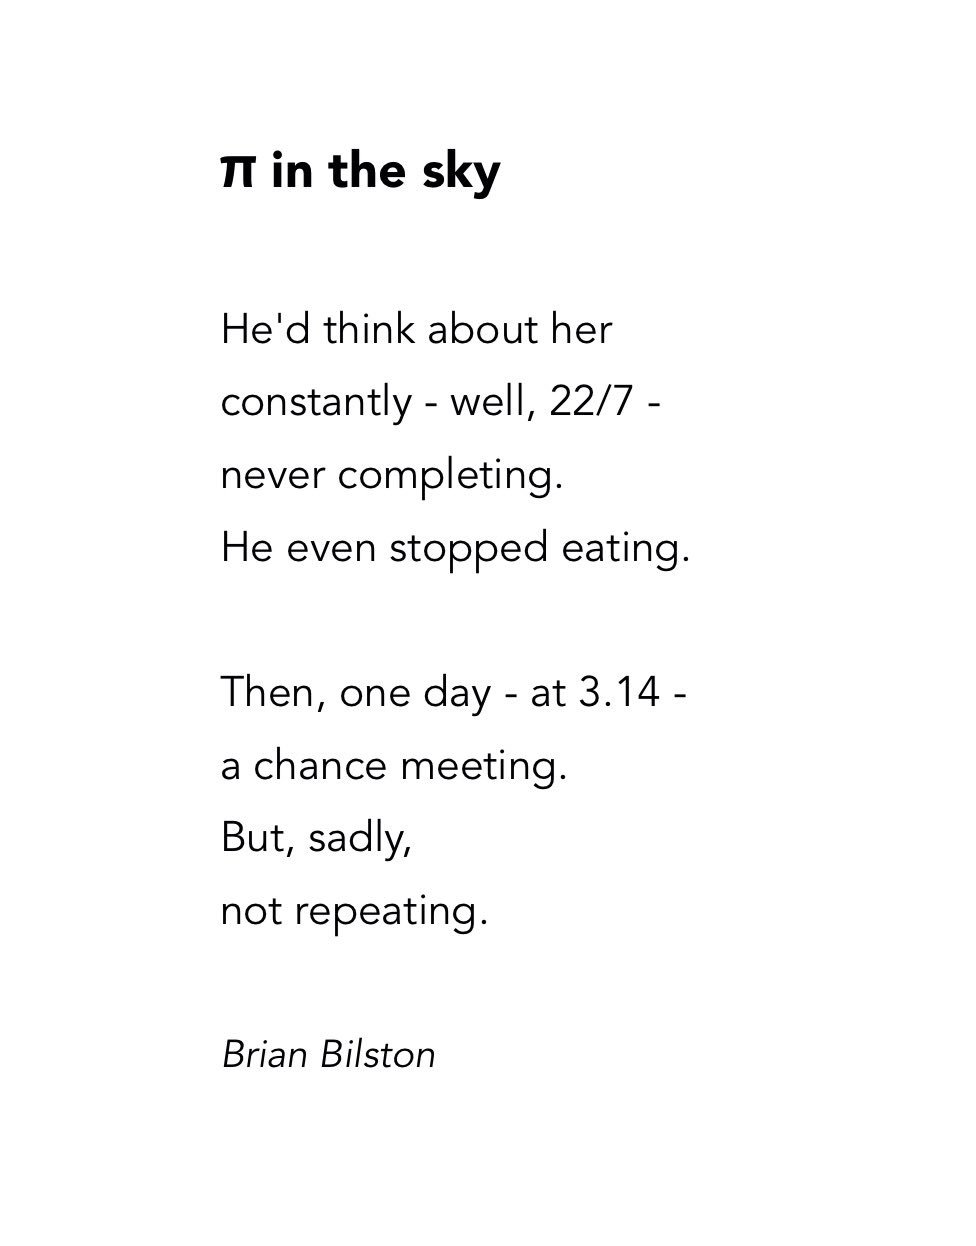 Brian Bilston On Twitter Quot Here Is A Short Poem To